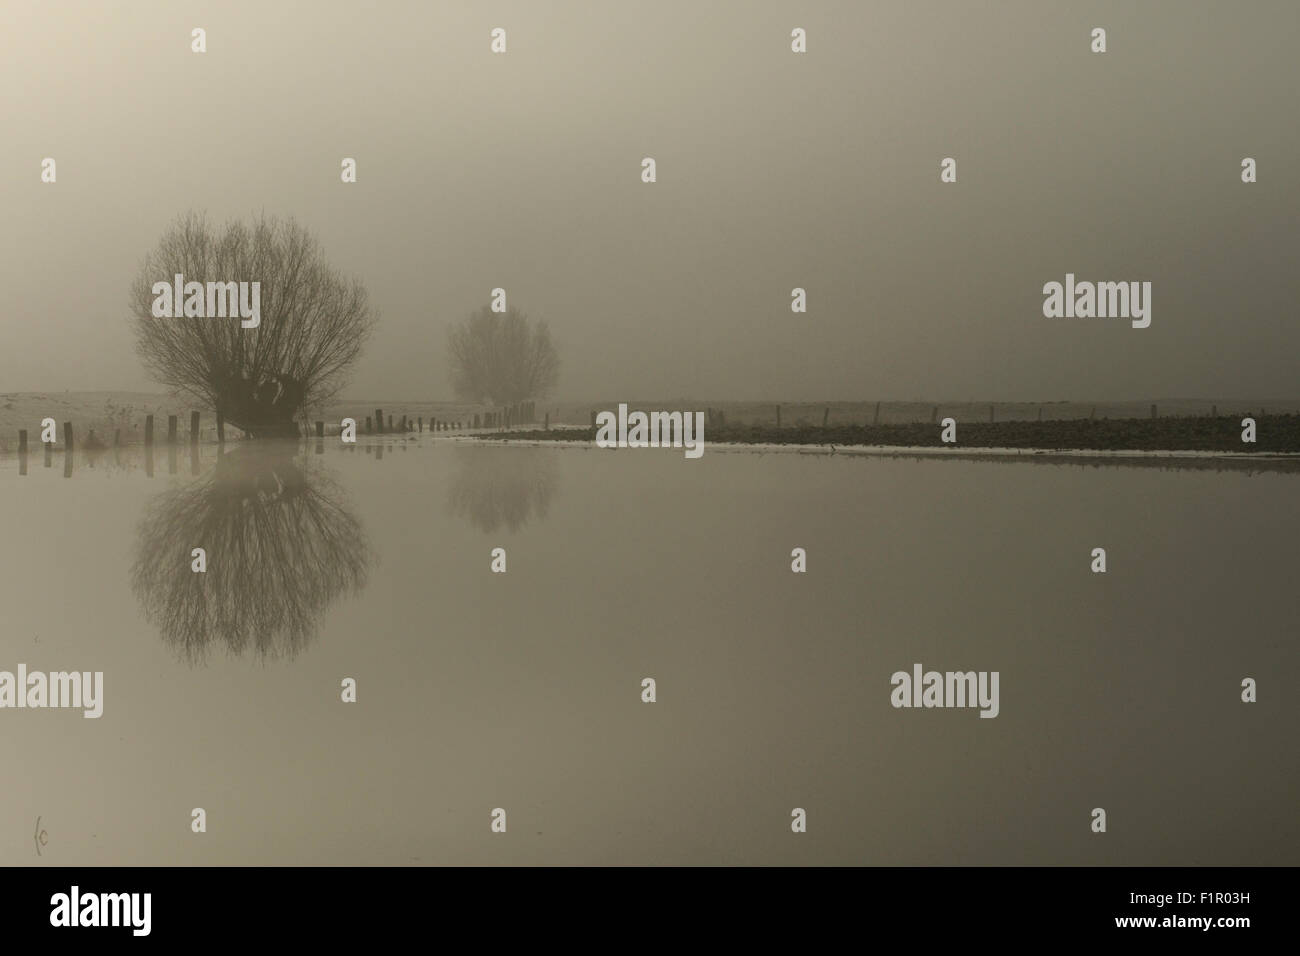 Flooded fields with pollard trees on a typical misty winter morning at Lower Rhine, North Rhine-Westphalia, Germany. - Stock Image